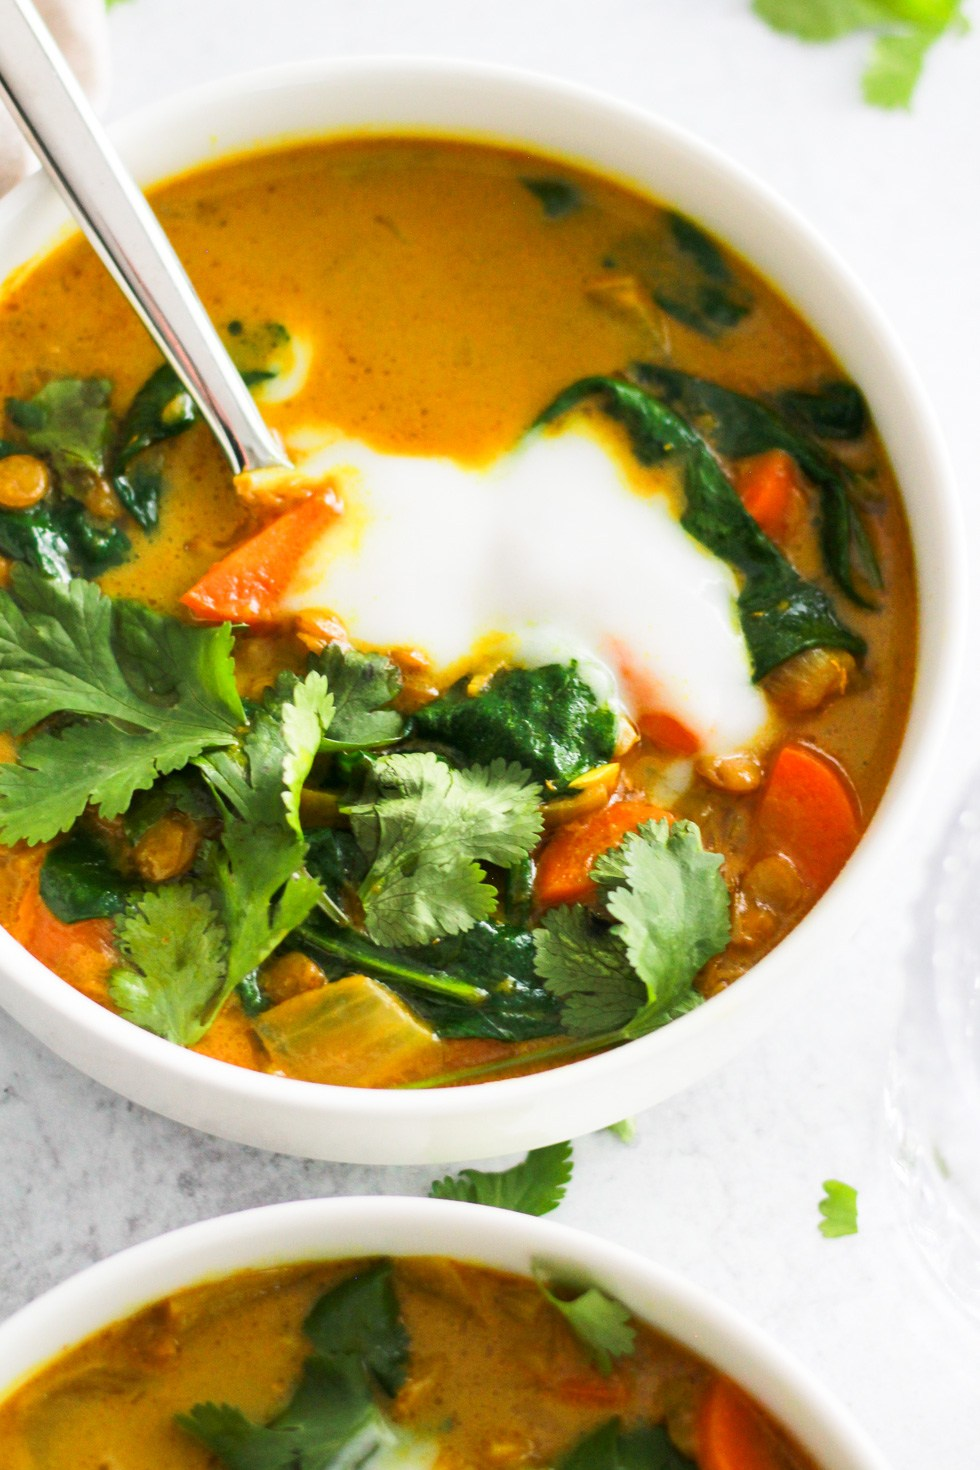 vegan soups like this yellow turmeric soup in a white bowl are easy college meals